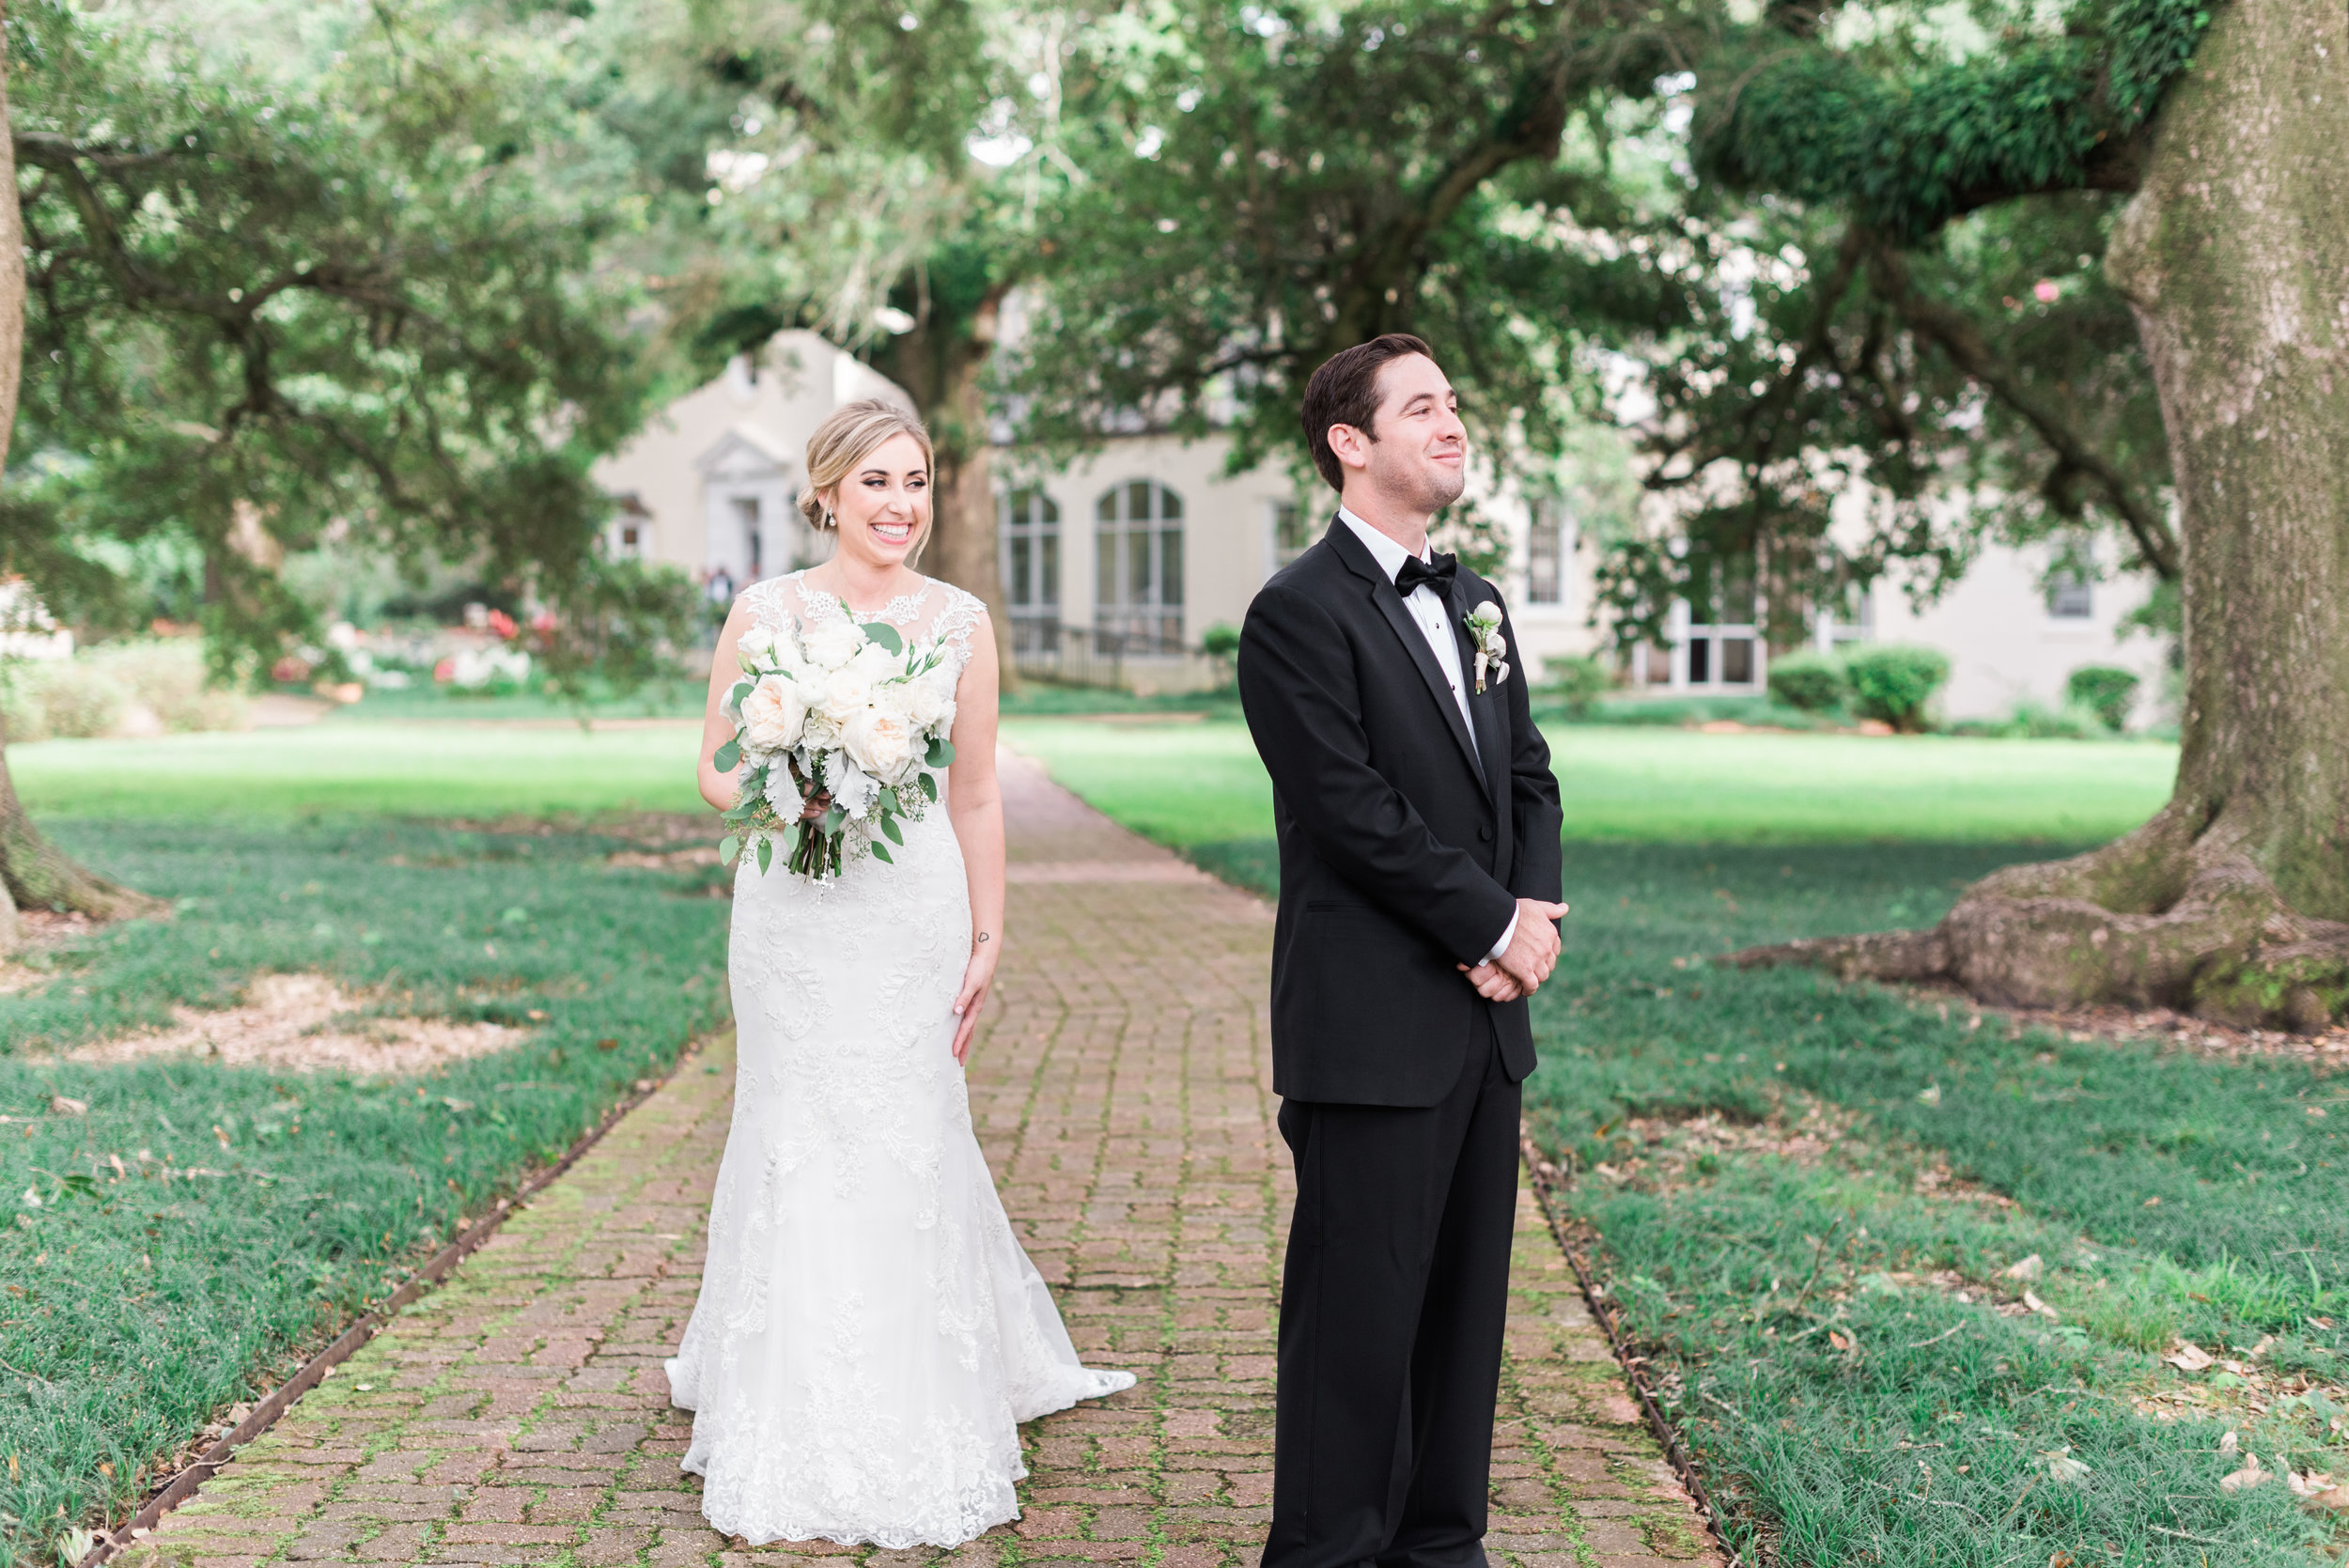 Southern Fete, Southern Wedding, Bride and Groom first look, Sarah Beth Photography